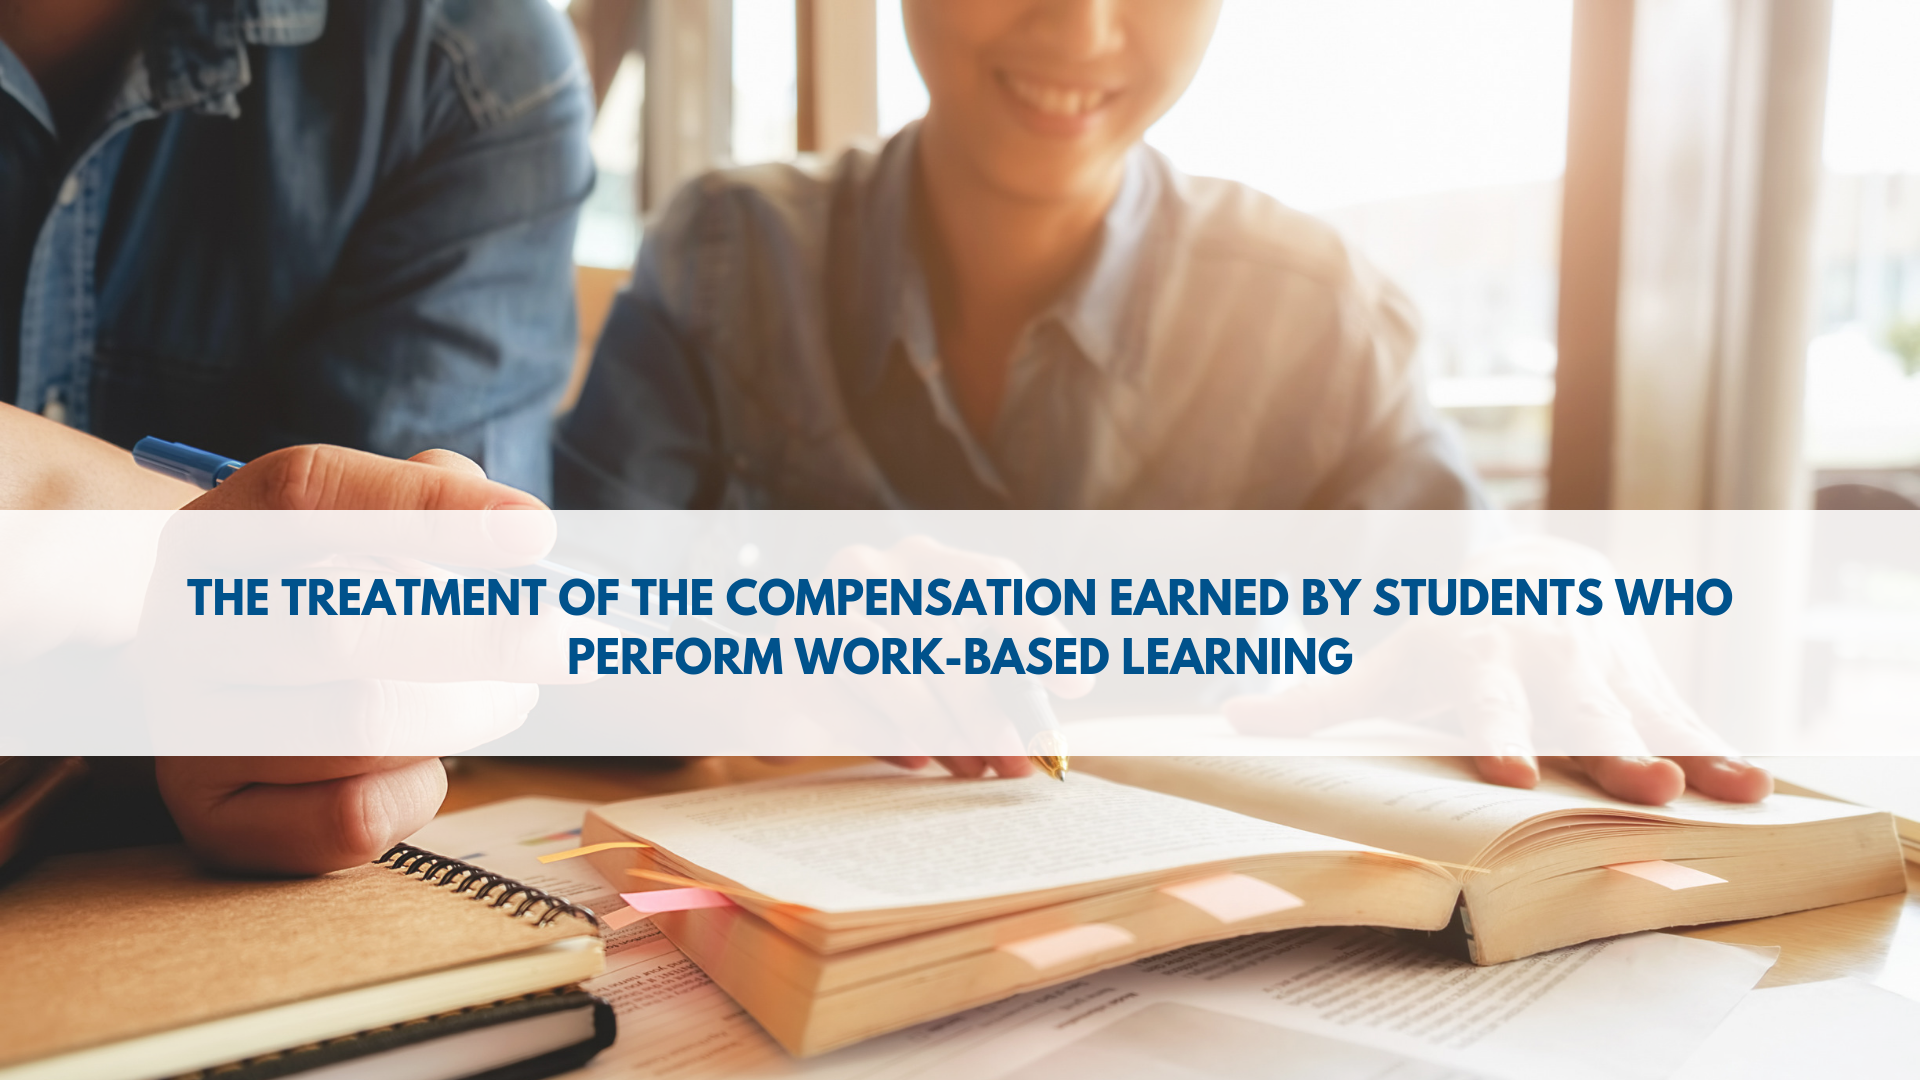 Law on Dual Education | The treatment of the compensation earned by students who perform work-based learning